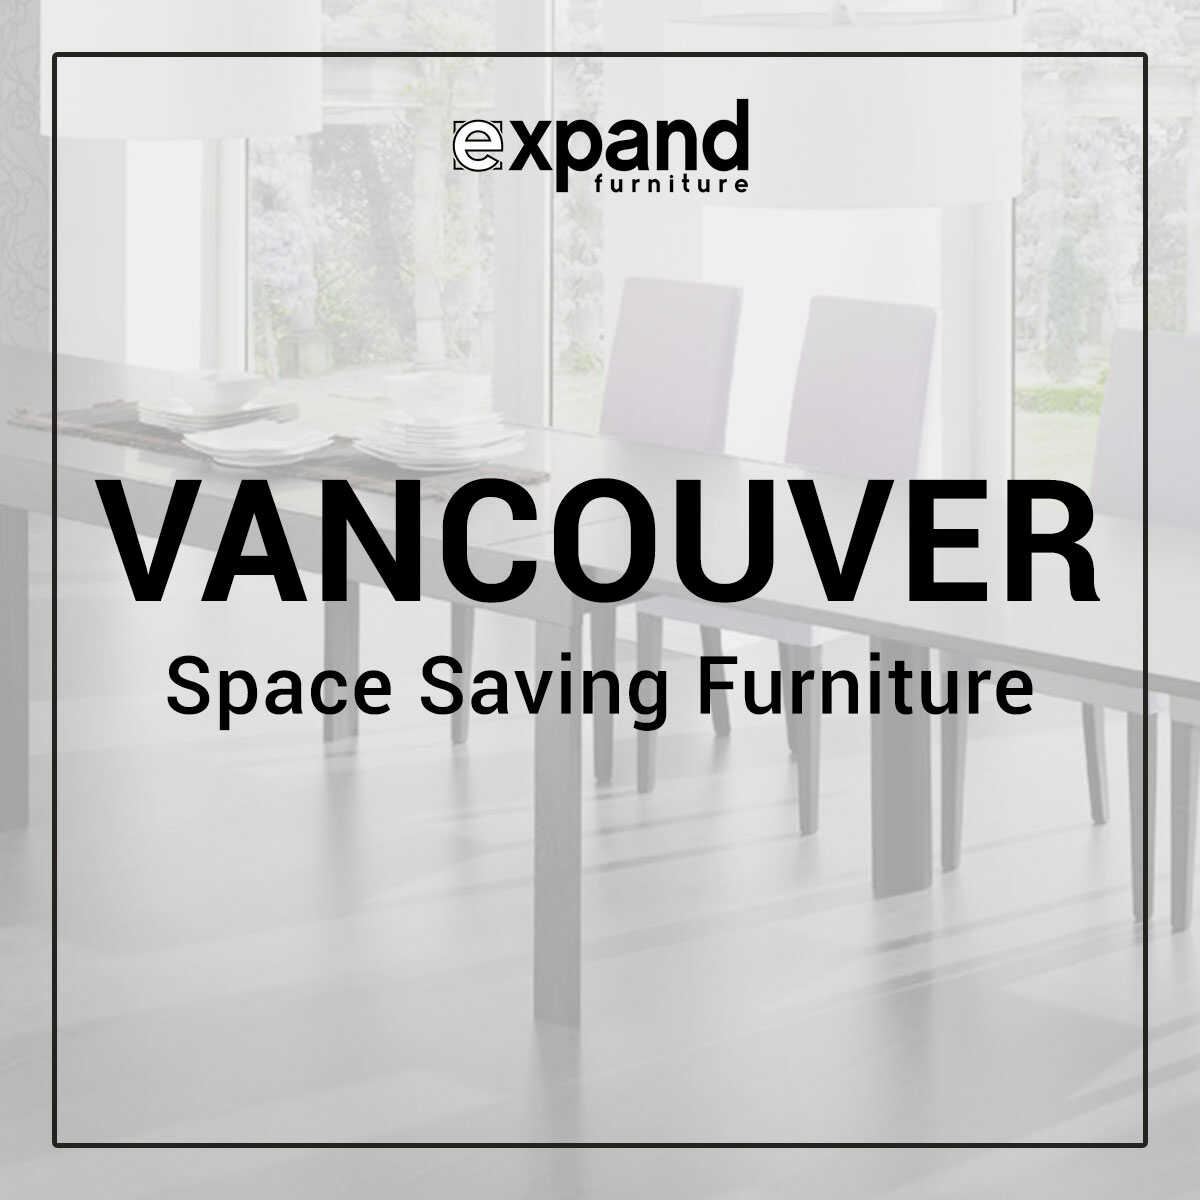 Vancouver Space Saving Furniture featured image